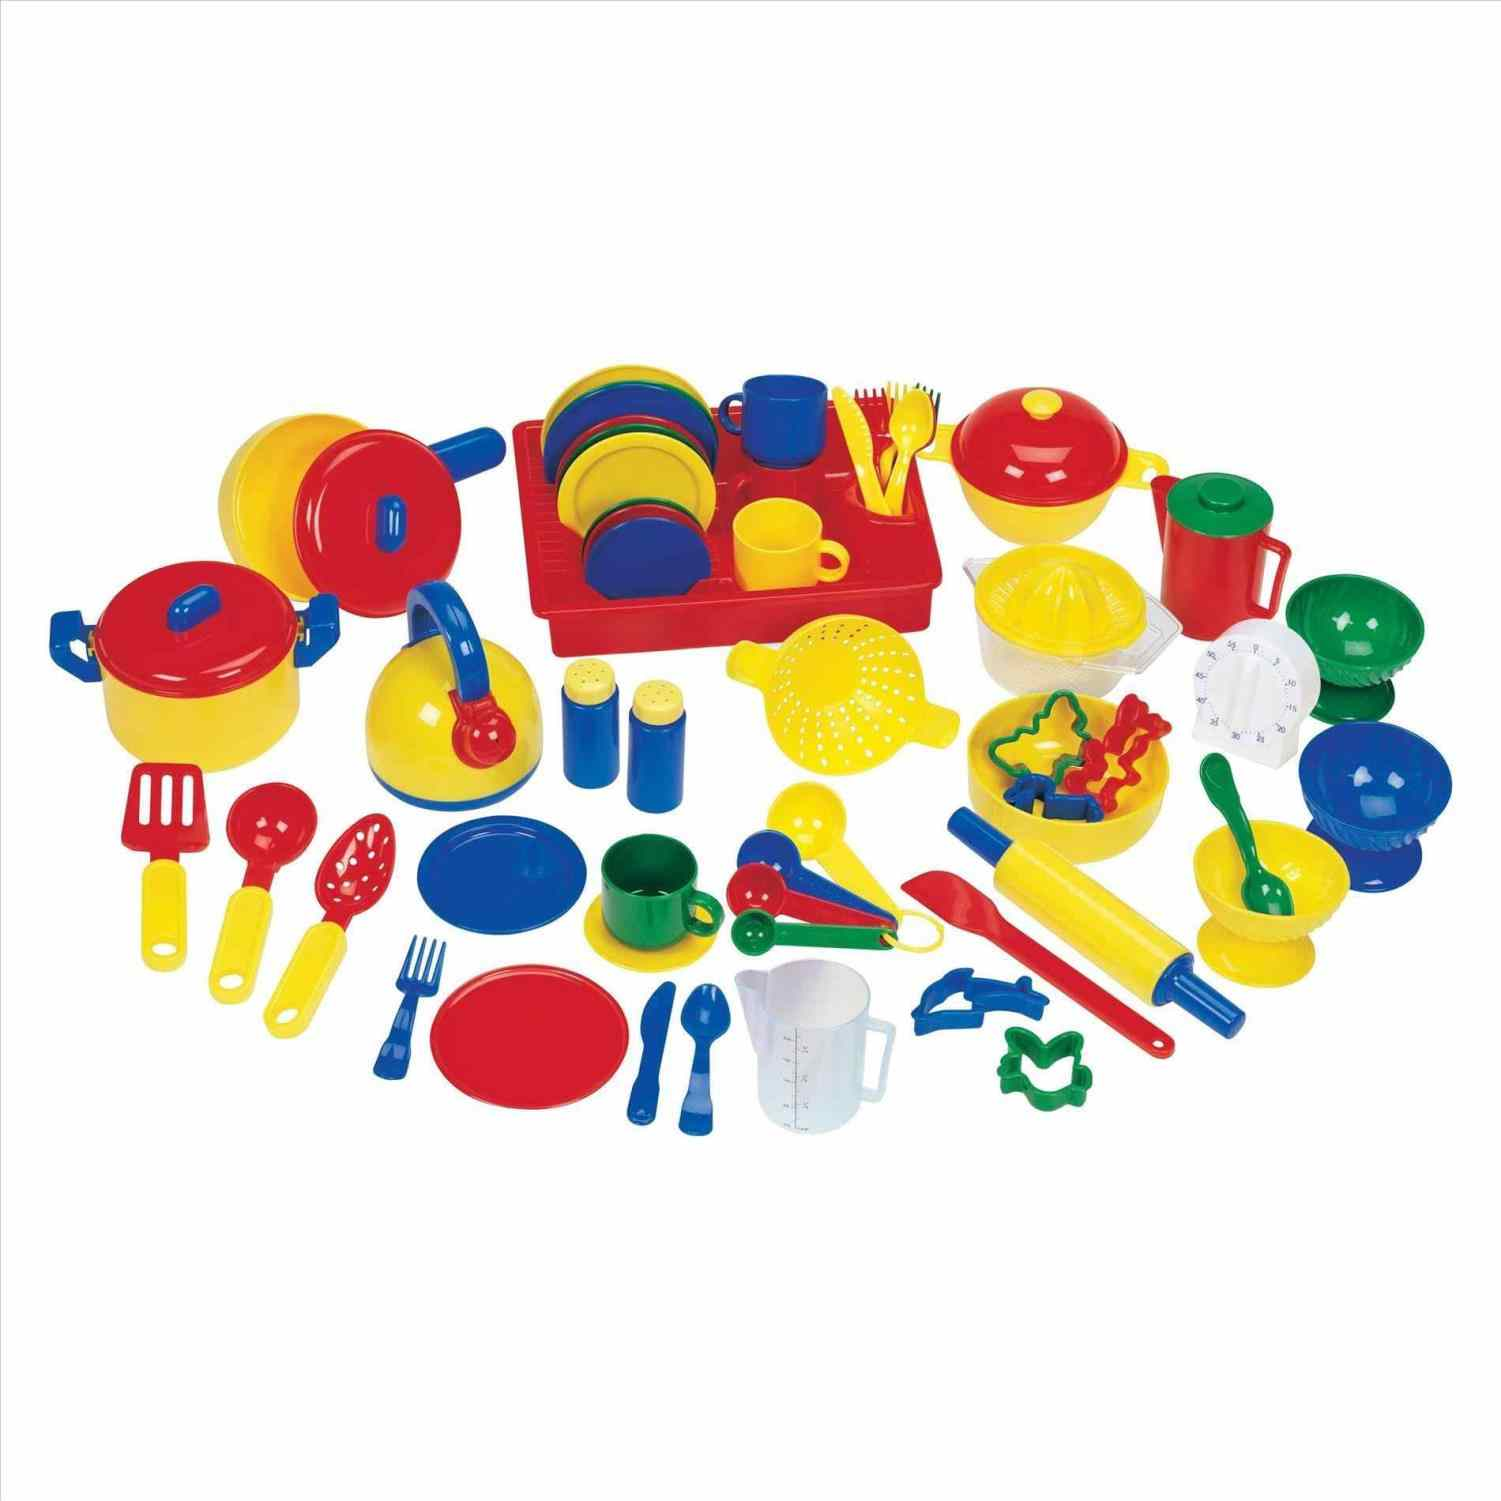 1501x1501 Food Play Toy Kitchen Clipart Role Accessories Set Kids Fruit Food